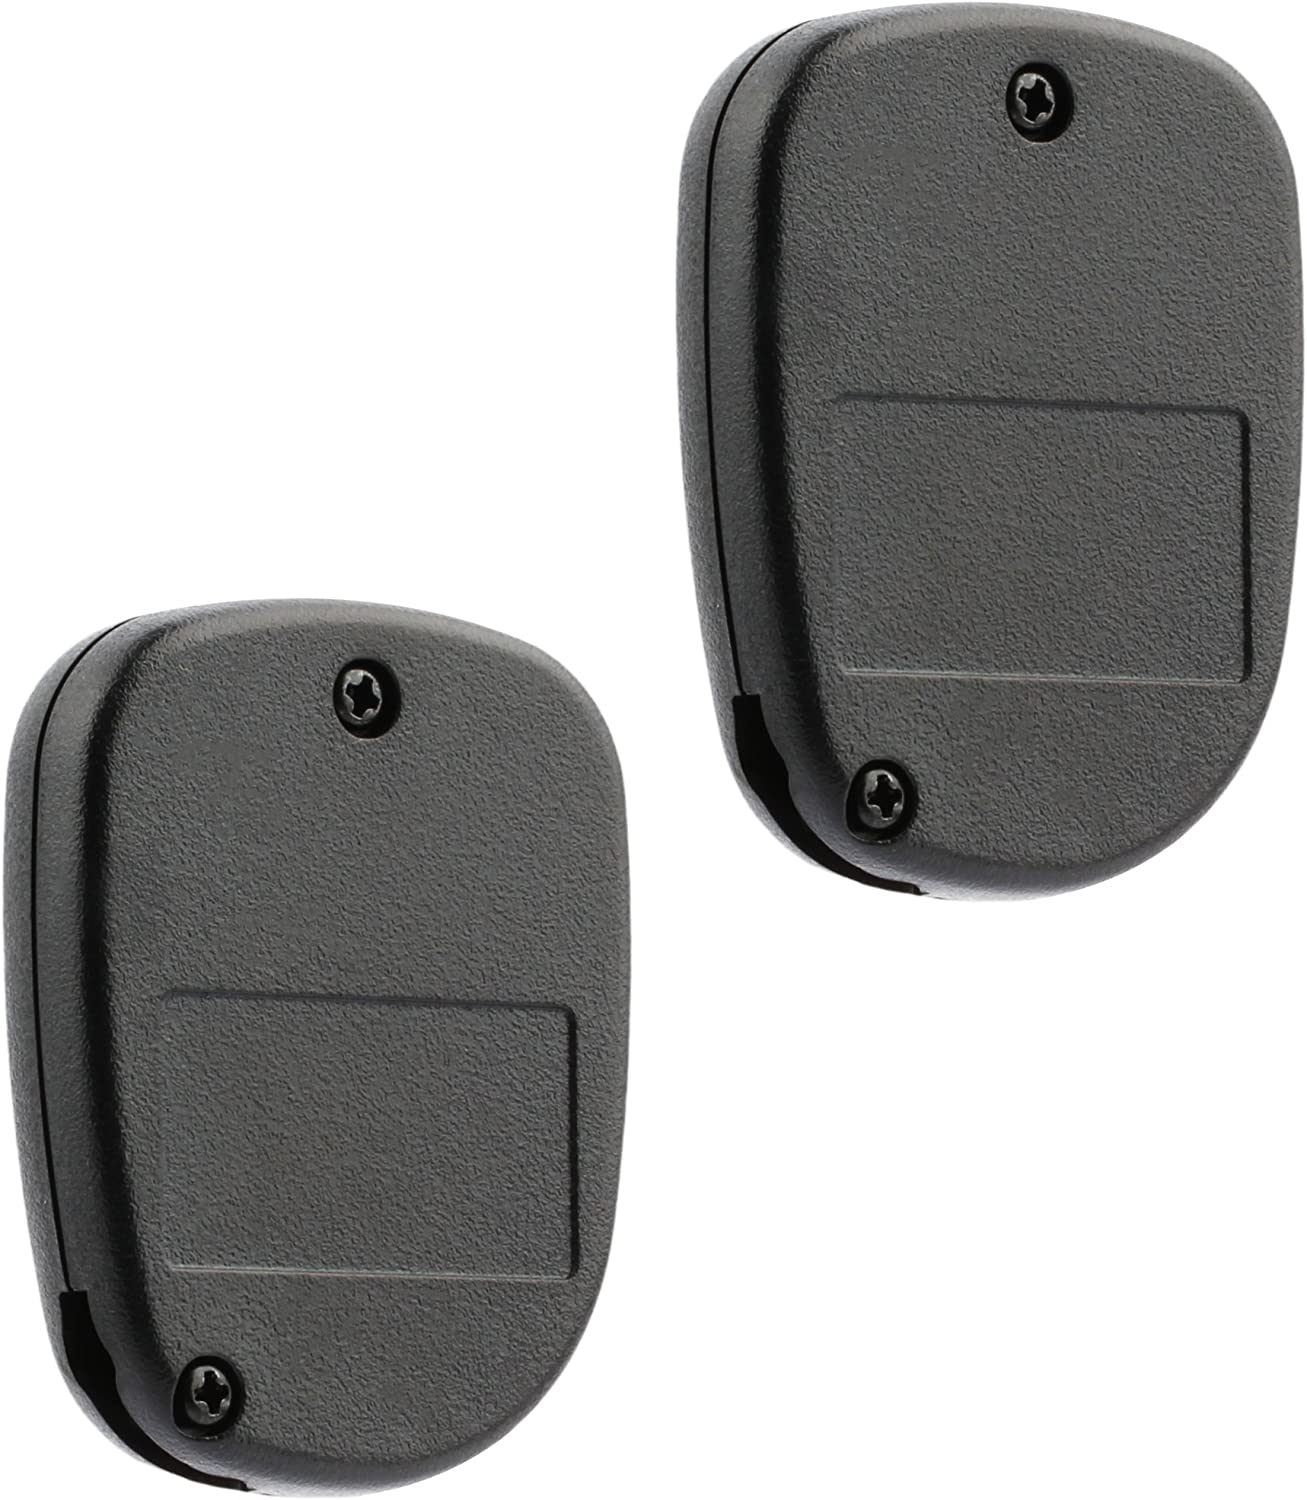 Set of 2 Key Fob fits Subaru Forester Impreza Legacy Outback Keyless Entry Remote NHVWB1U711